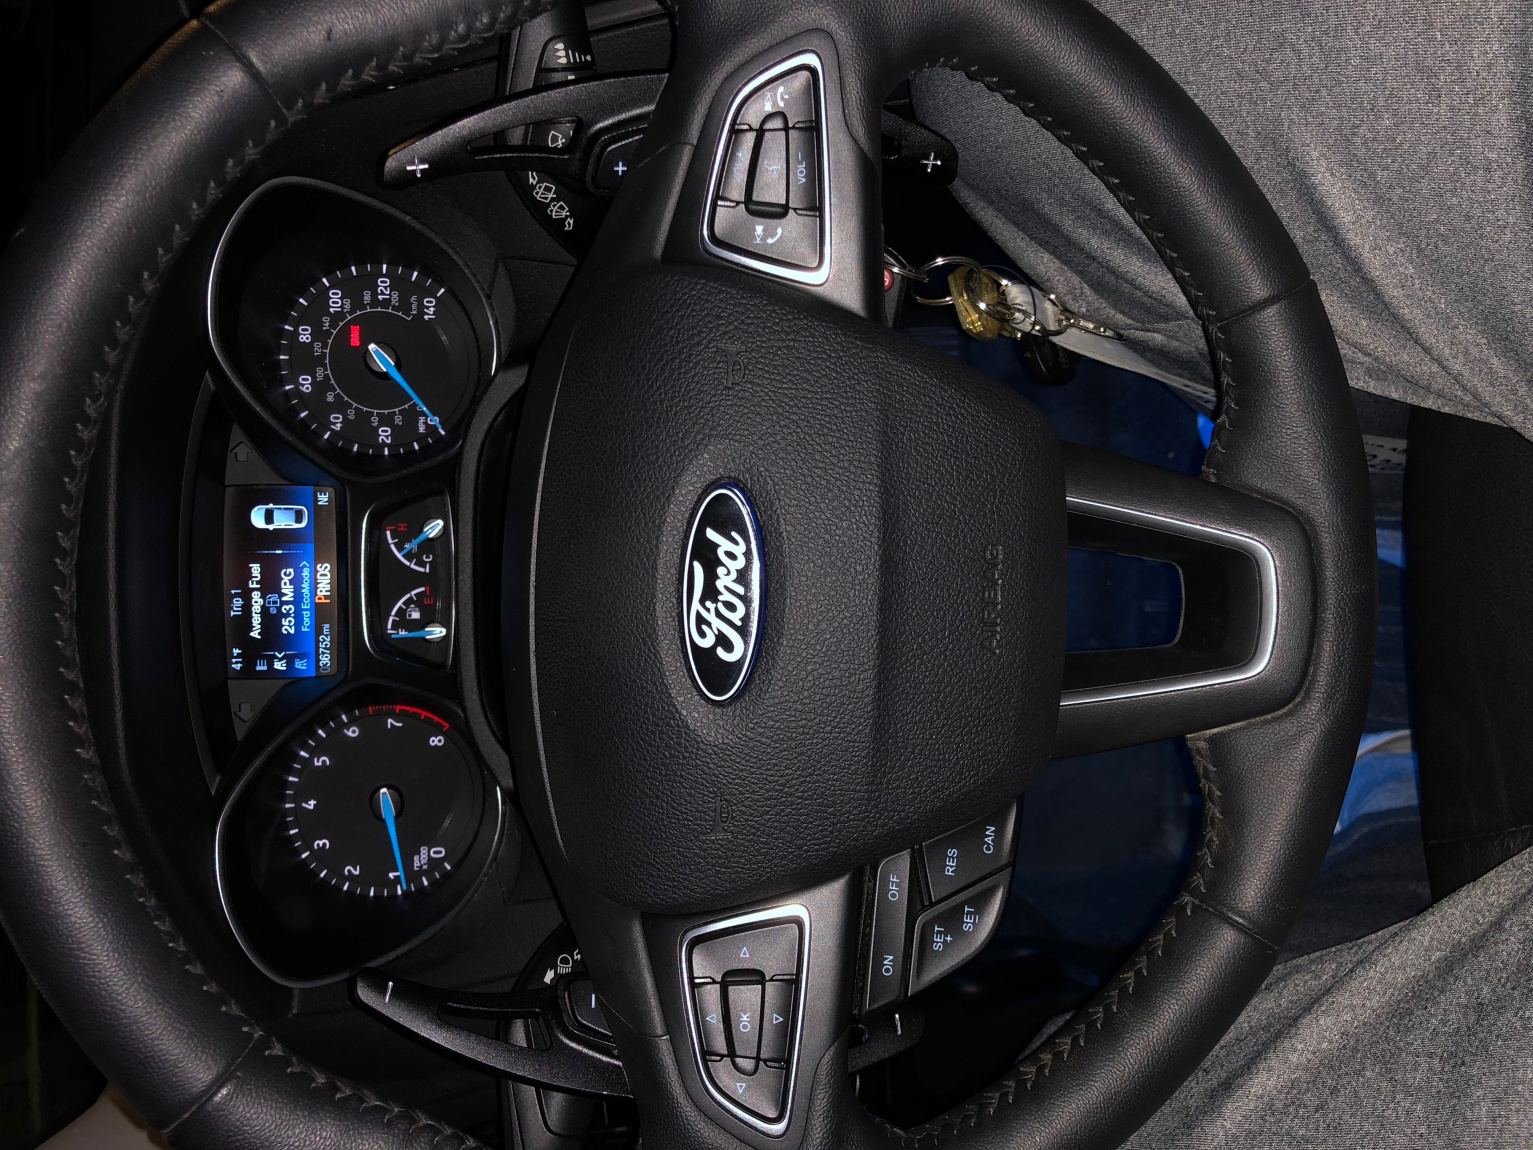 Add Sport Mode and Paddle Shifter to Base 2016 SE-img-0934.jpg